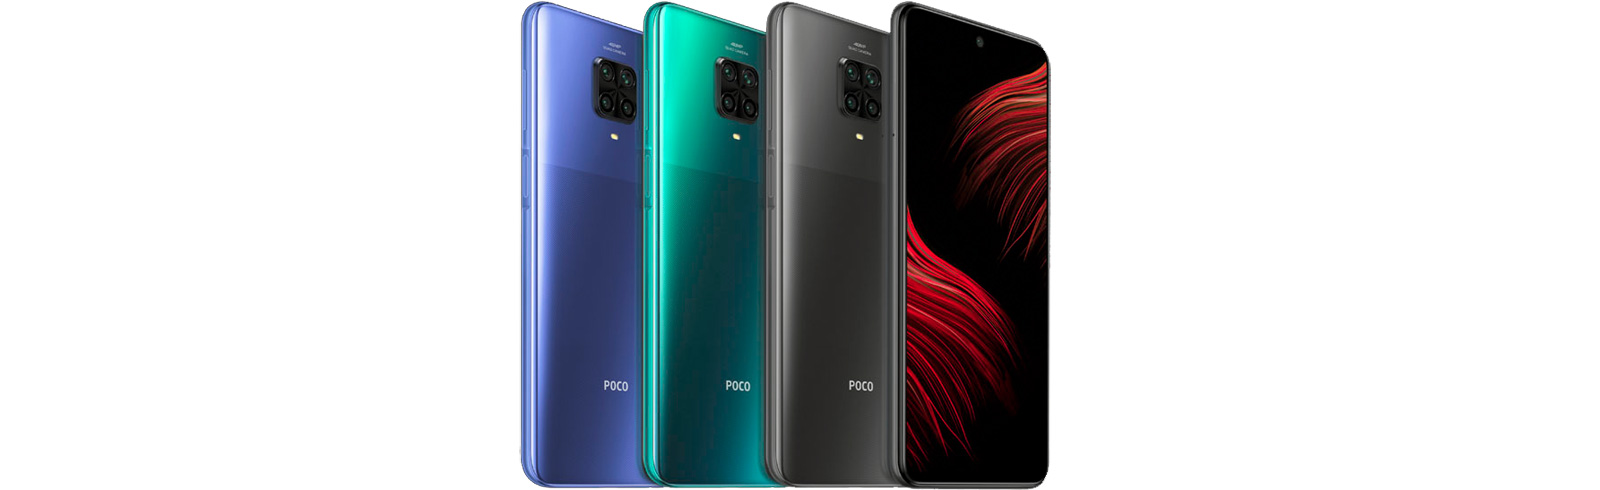 Xiaomi POCO M2 Pro goes official - specifications and prices